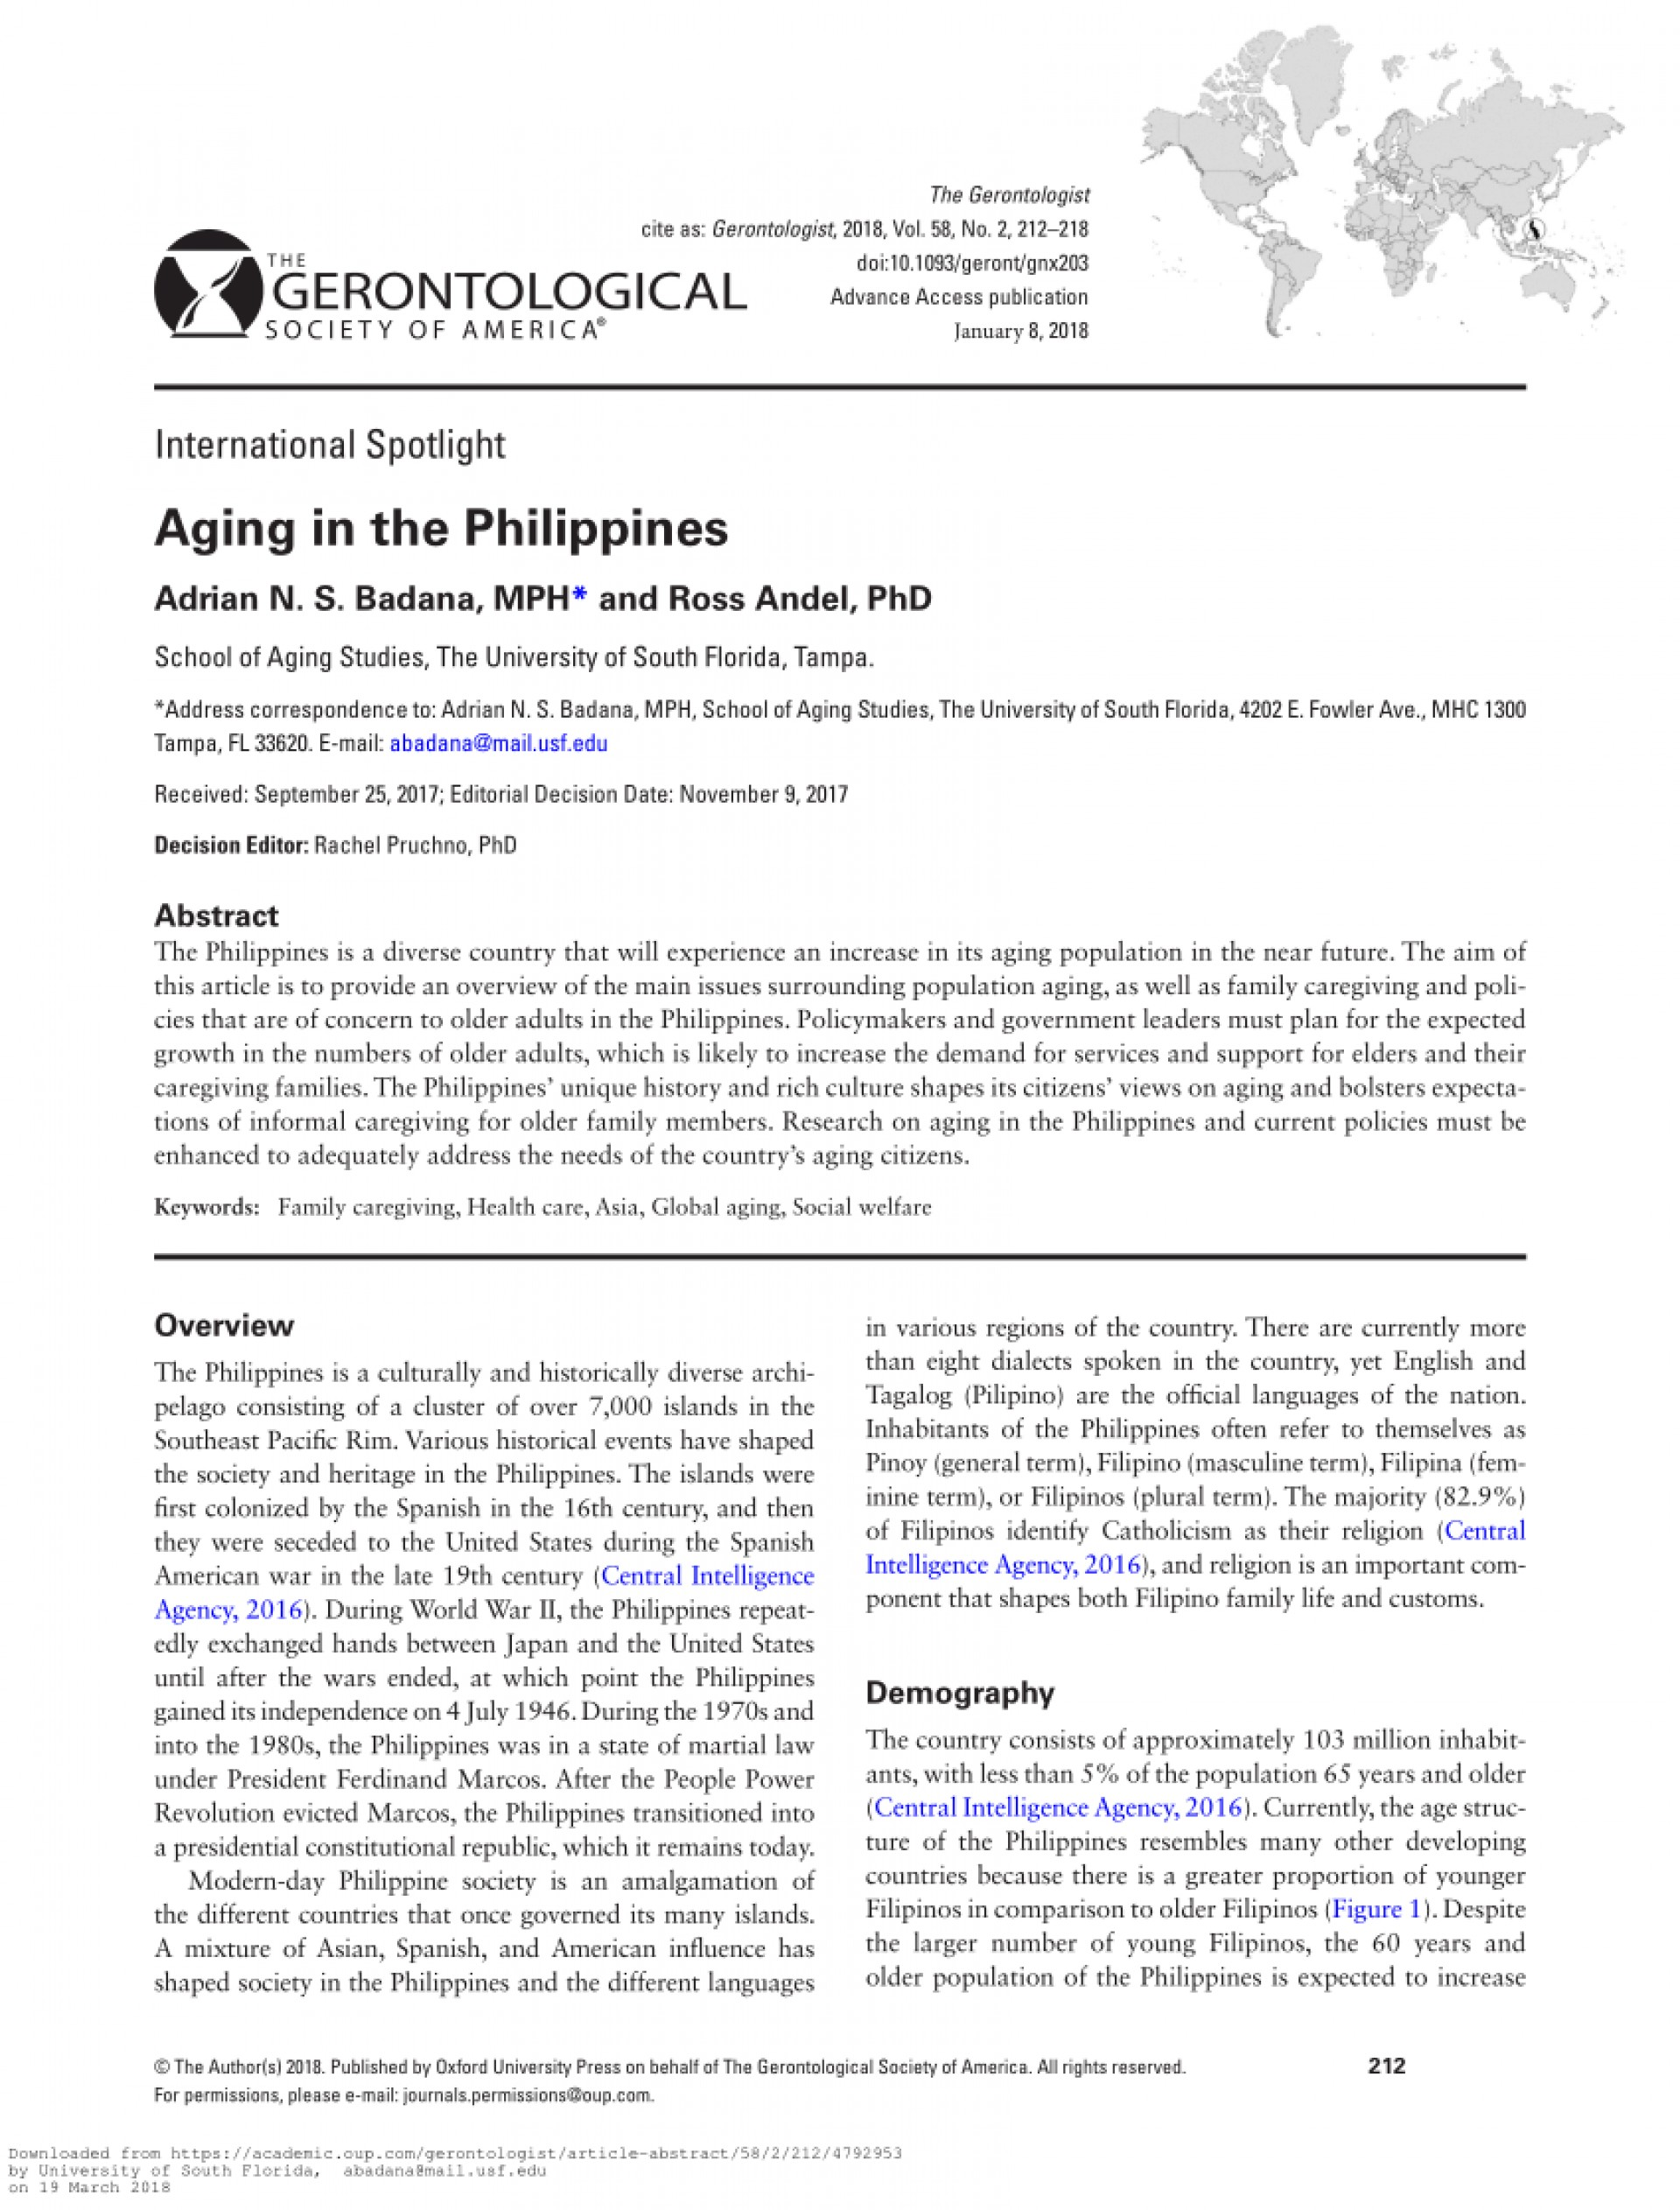 005 Poverty In The Philippines Research Paper Abstract Remarkable 1920